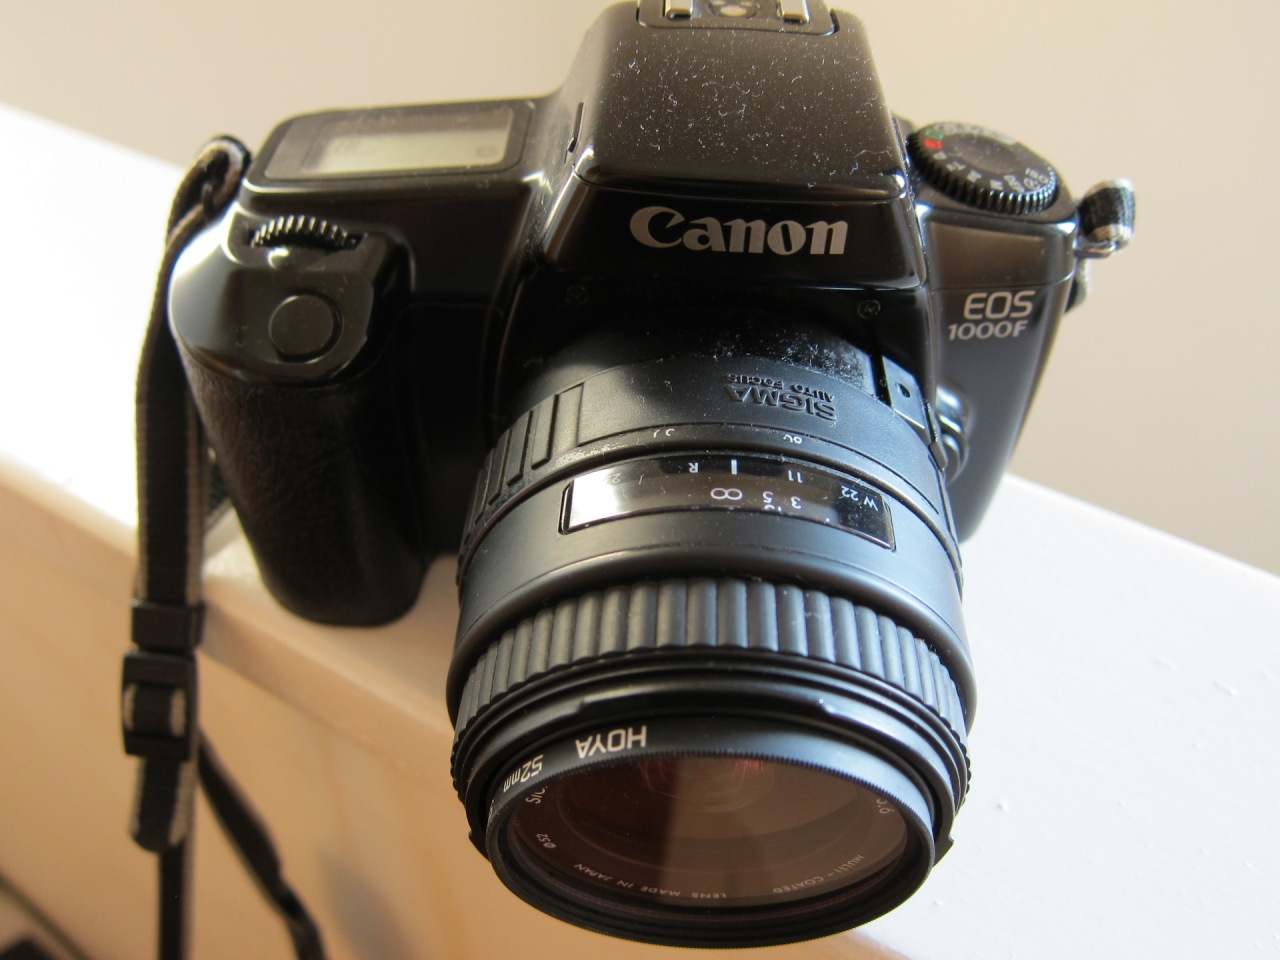 Return to Canon EOS 1000, but with anF